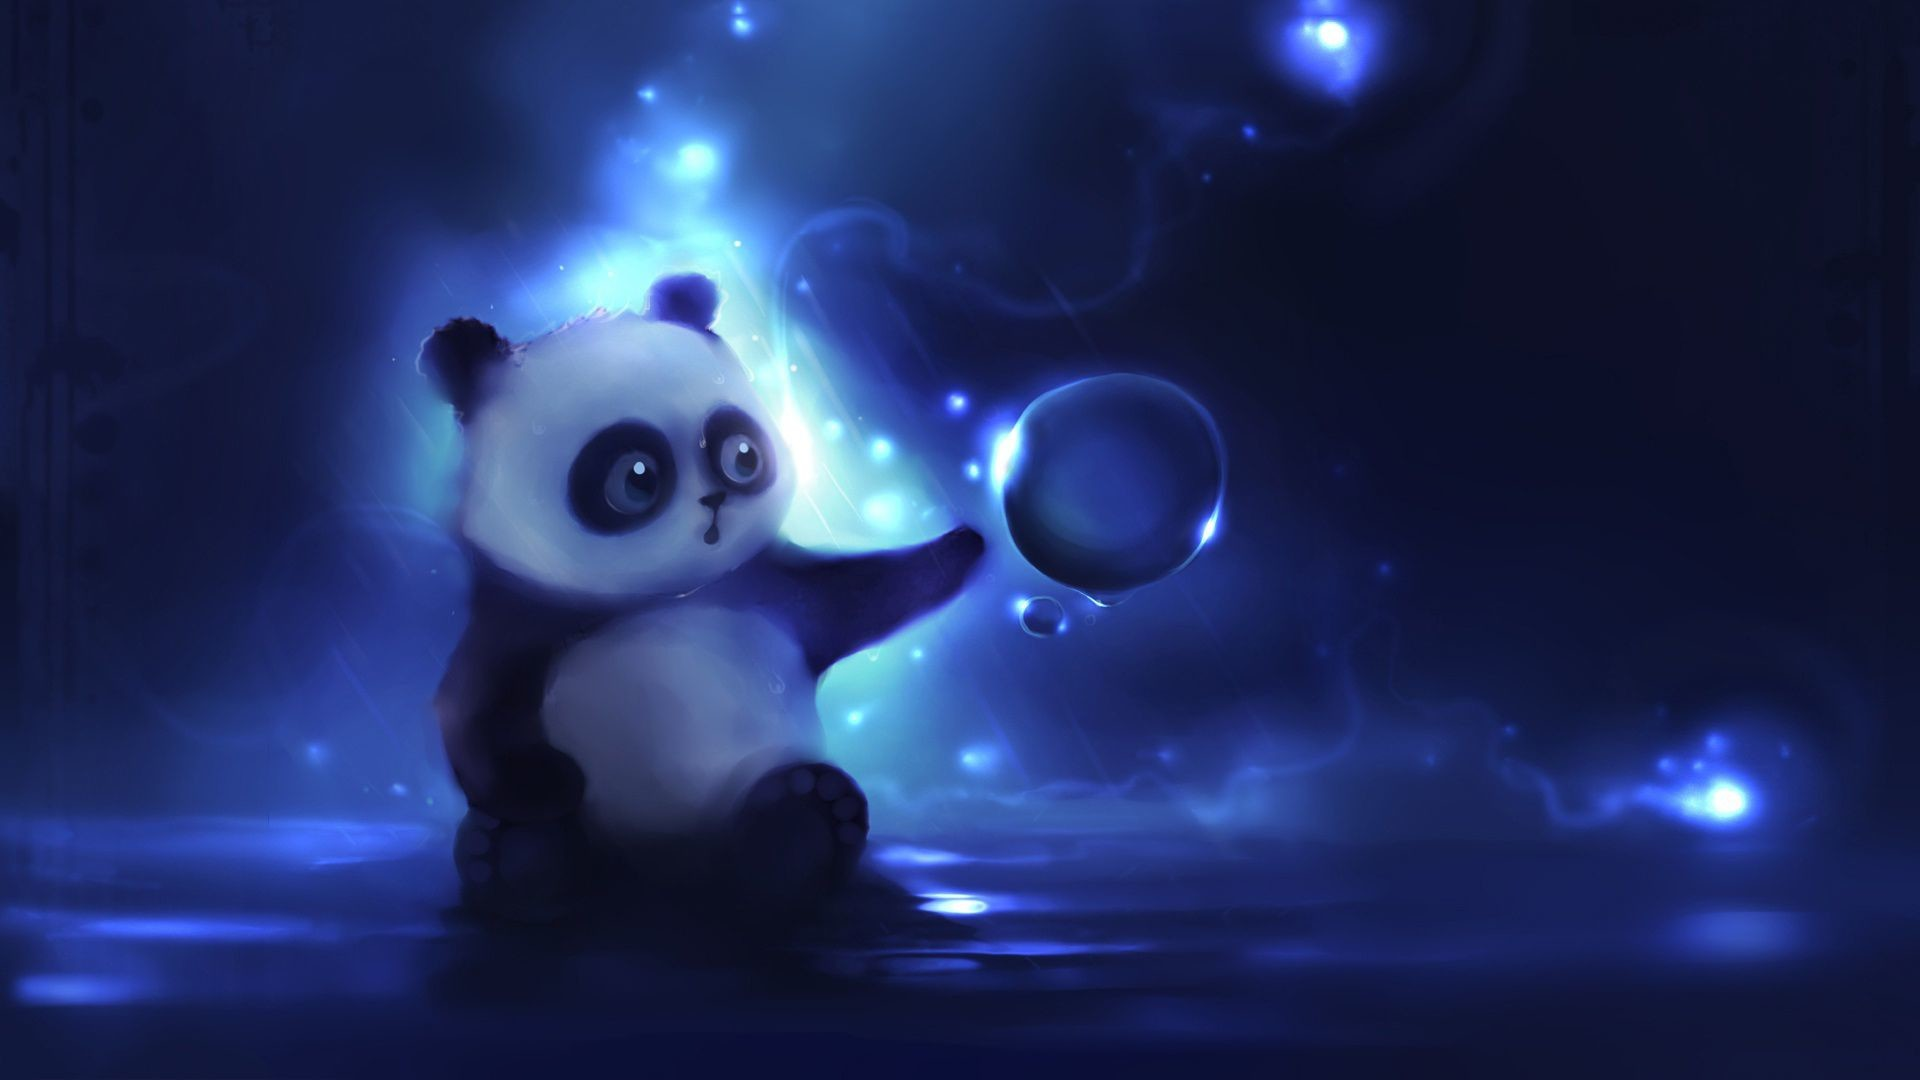 Cute Baby Panda Animal Lovely Branches Wallpaper Source Background